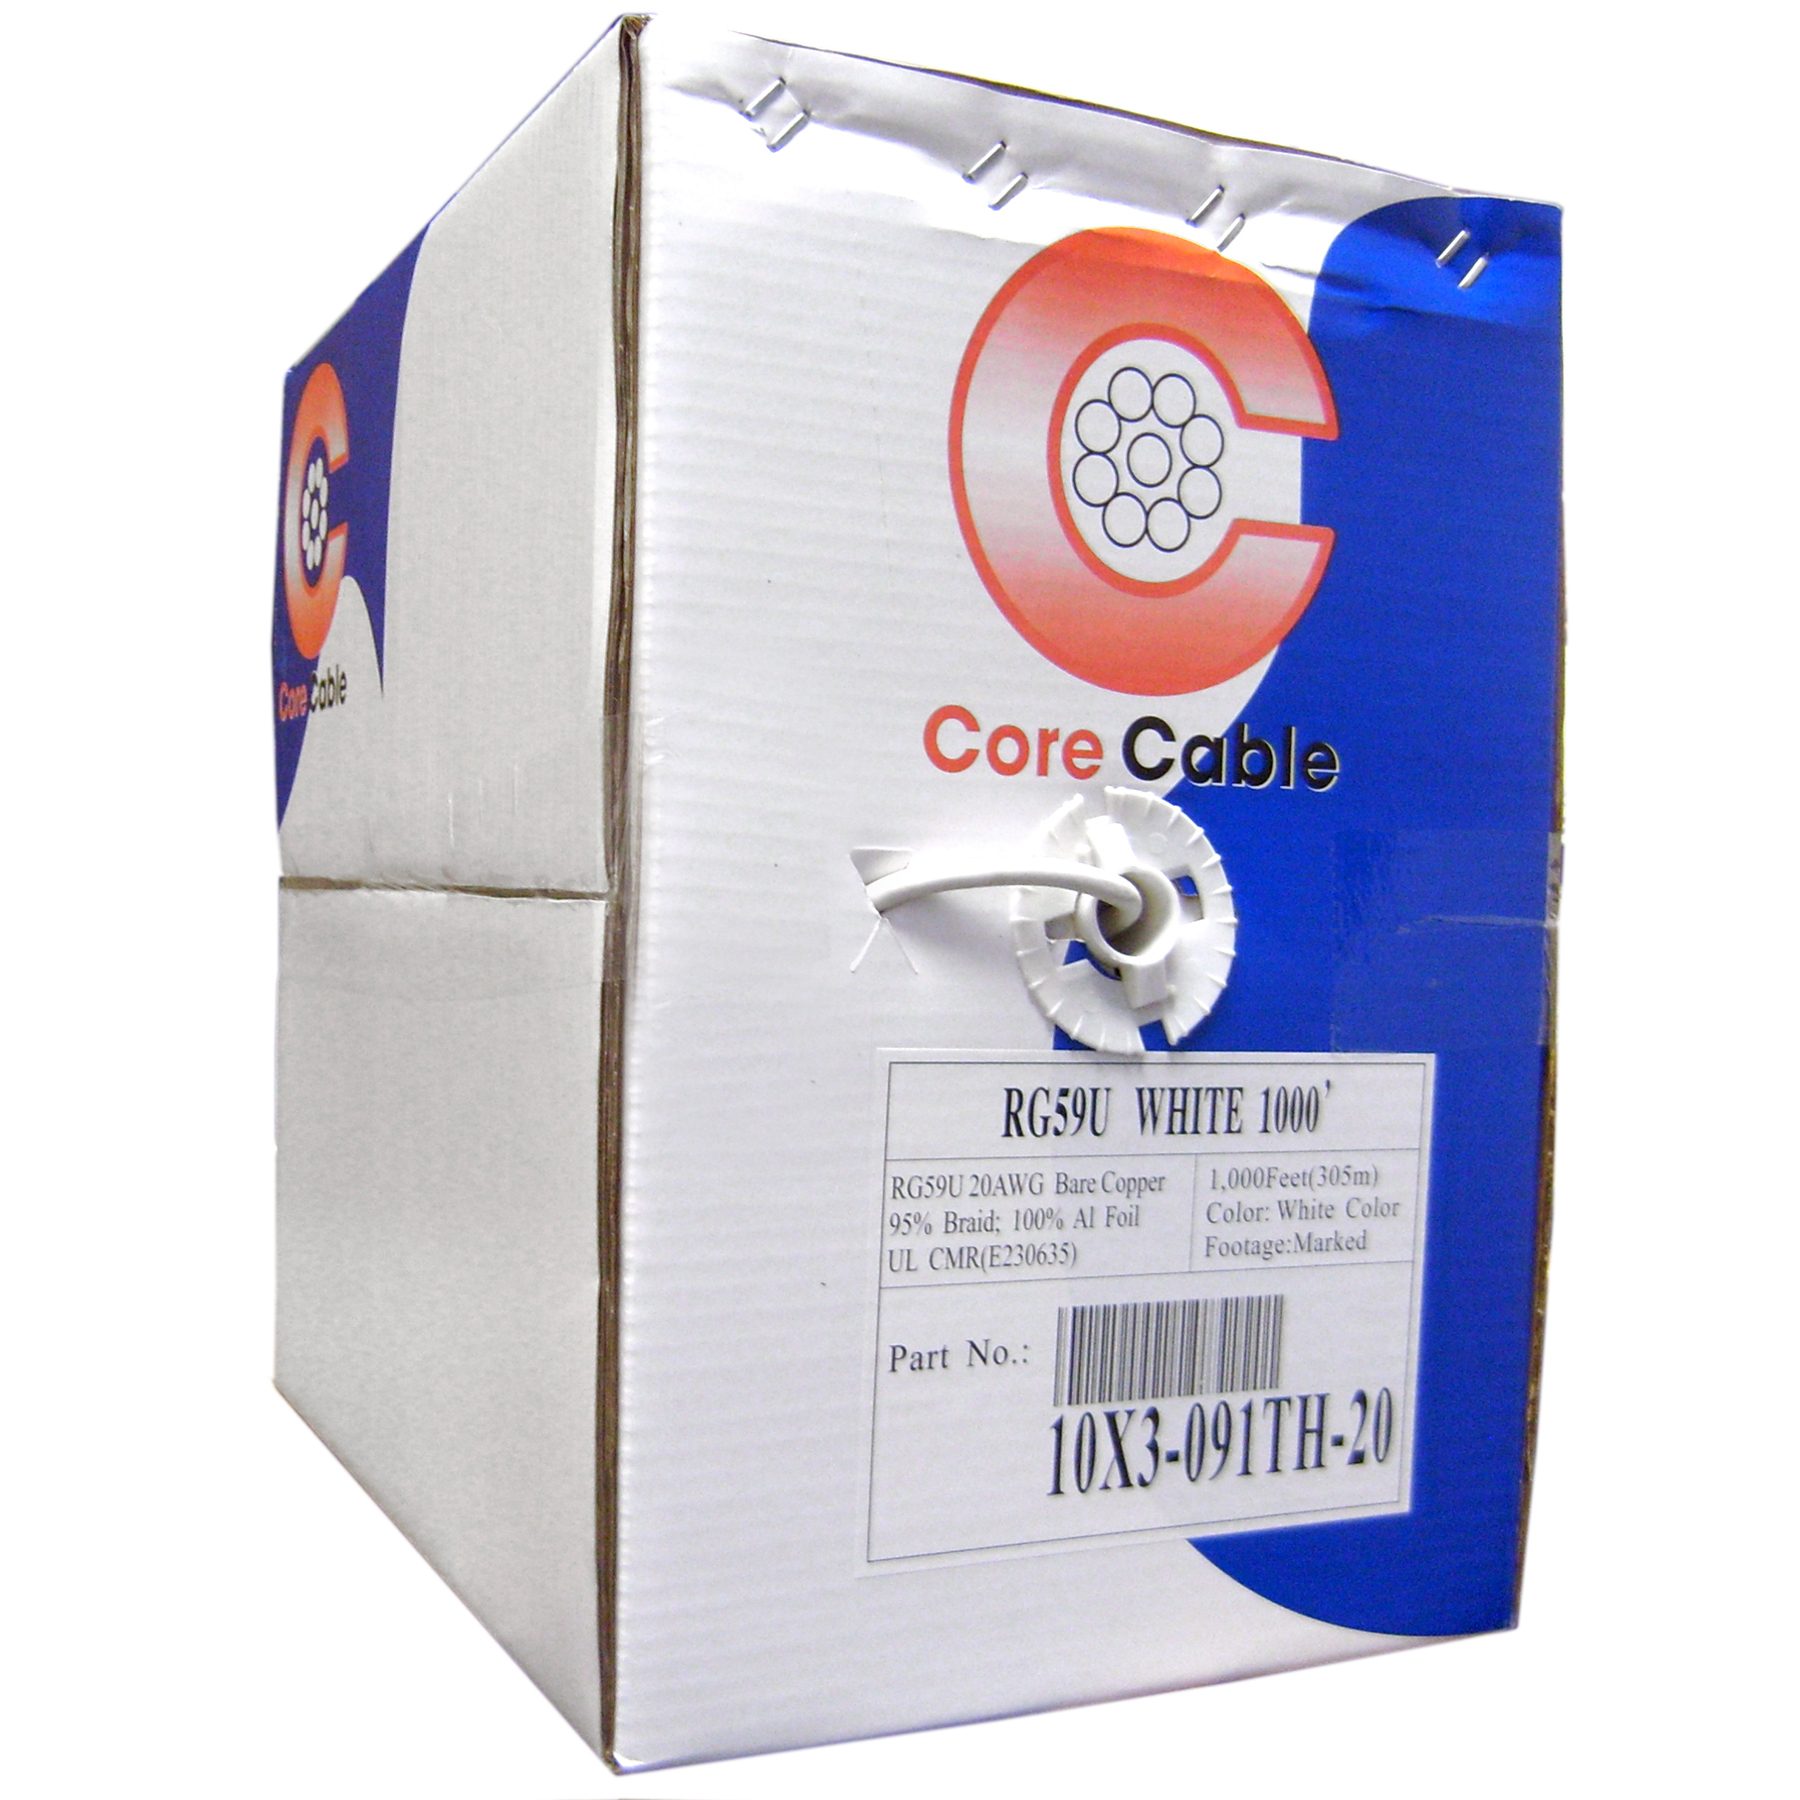 RG59 20AWG, Plenum Solid Coaxial Cable, Pullbox Style, White, 1000 ft - 11X3-091TH-20 - 11X3-091TH-20